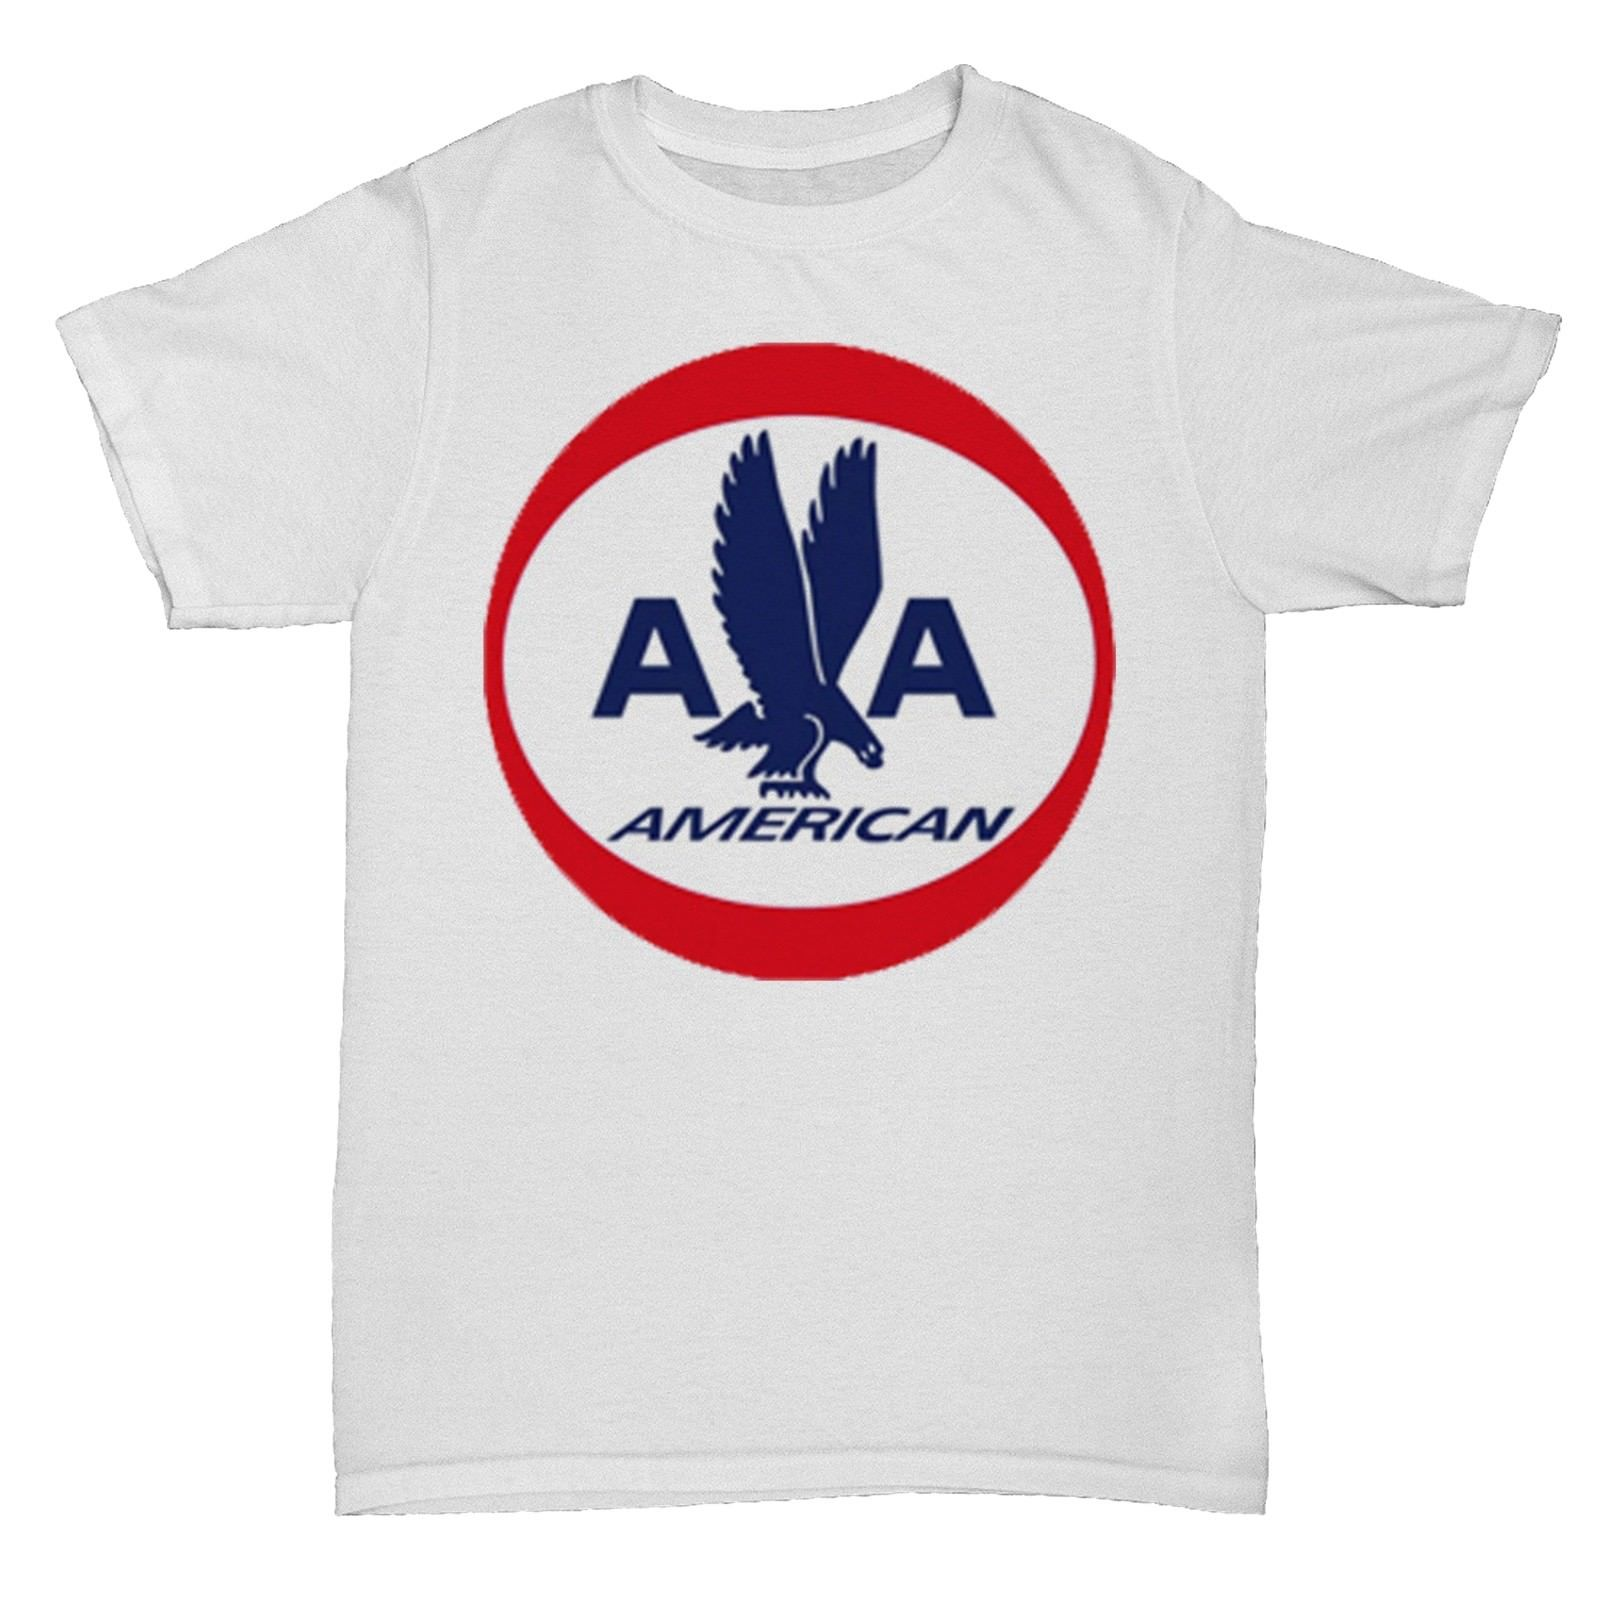 AMERICAN USA AIRLINES RETRO AEROPLANE BOAC PAN AM T SHIRT O-Neck Sunlight Men T-Shirt Top Tee Middle Aged Top Tee